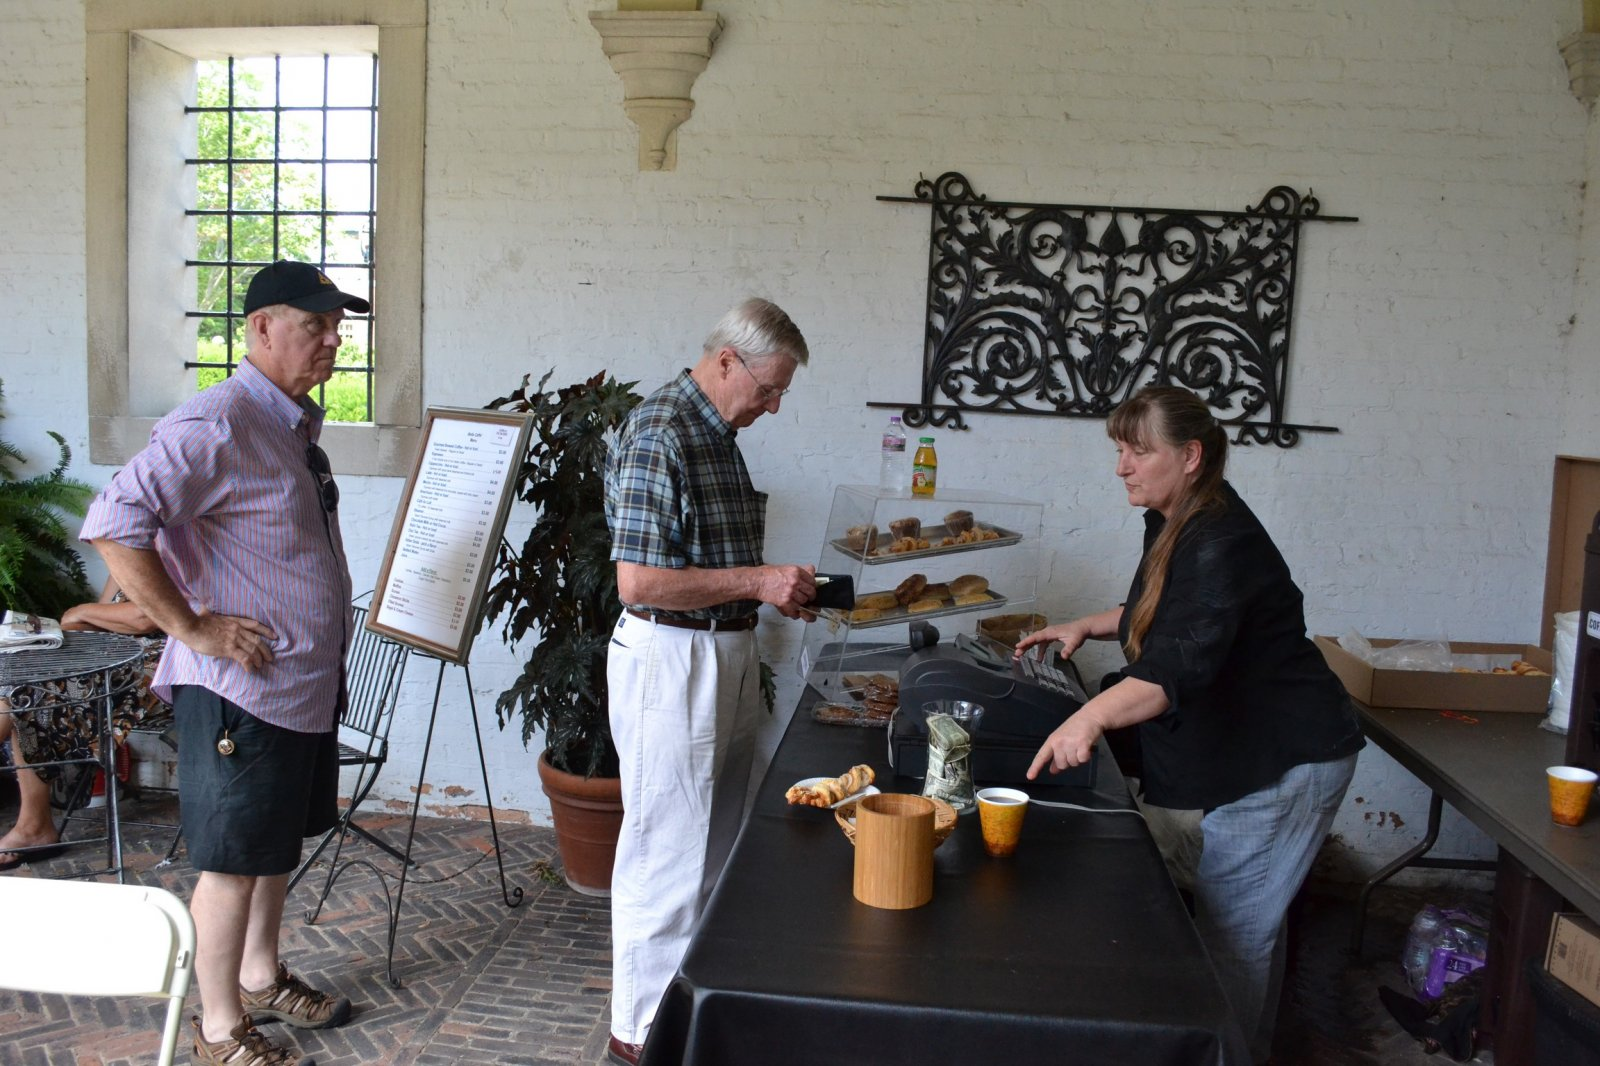 Guests buy coffee and baked goods from the Courtyard vendor